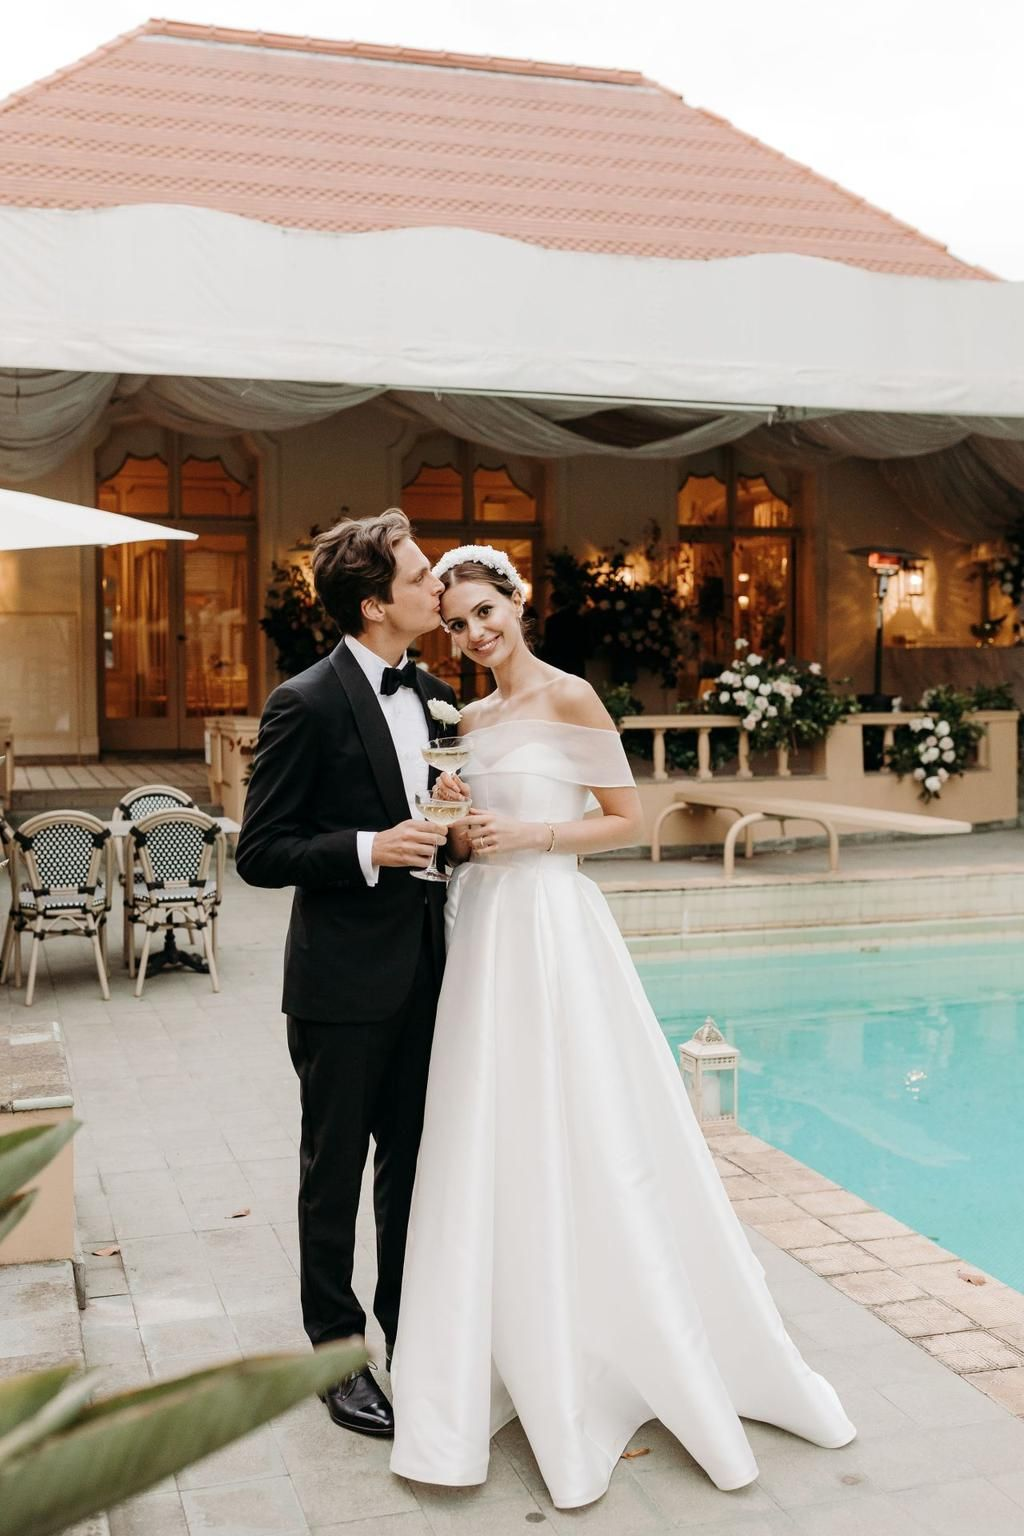 Inside A Classic Melbourne Wedding Set At An Iconic Cathedral In 2020 Vogue Bride Melbourne Wedding Vogue Wedding